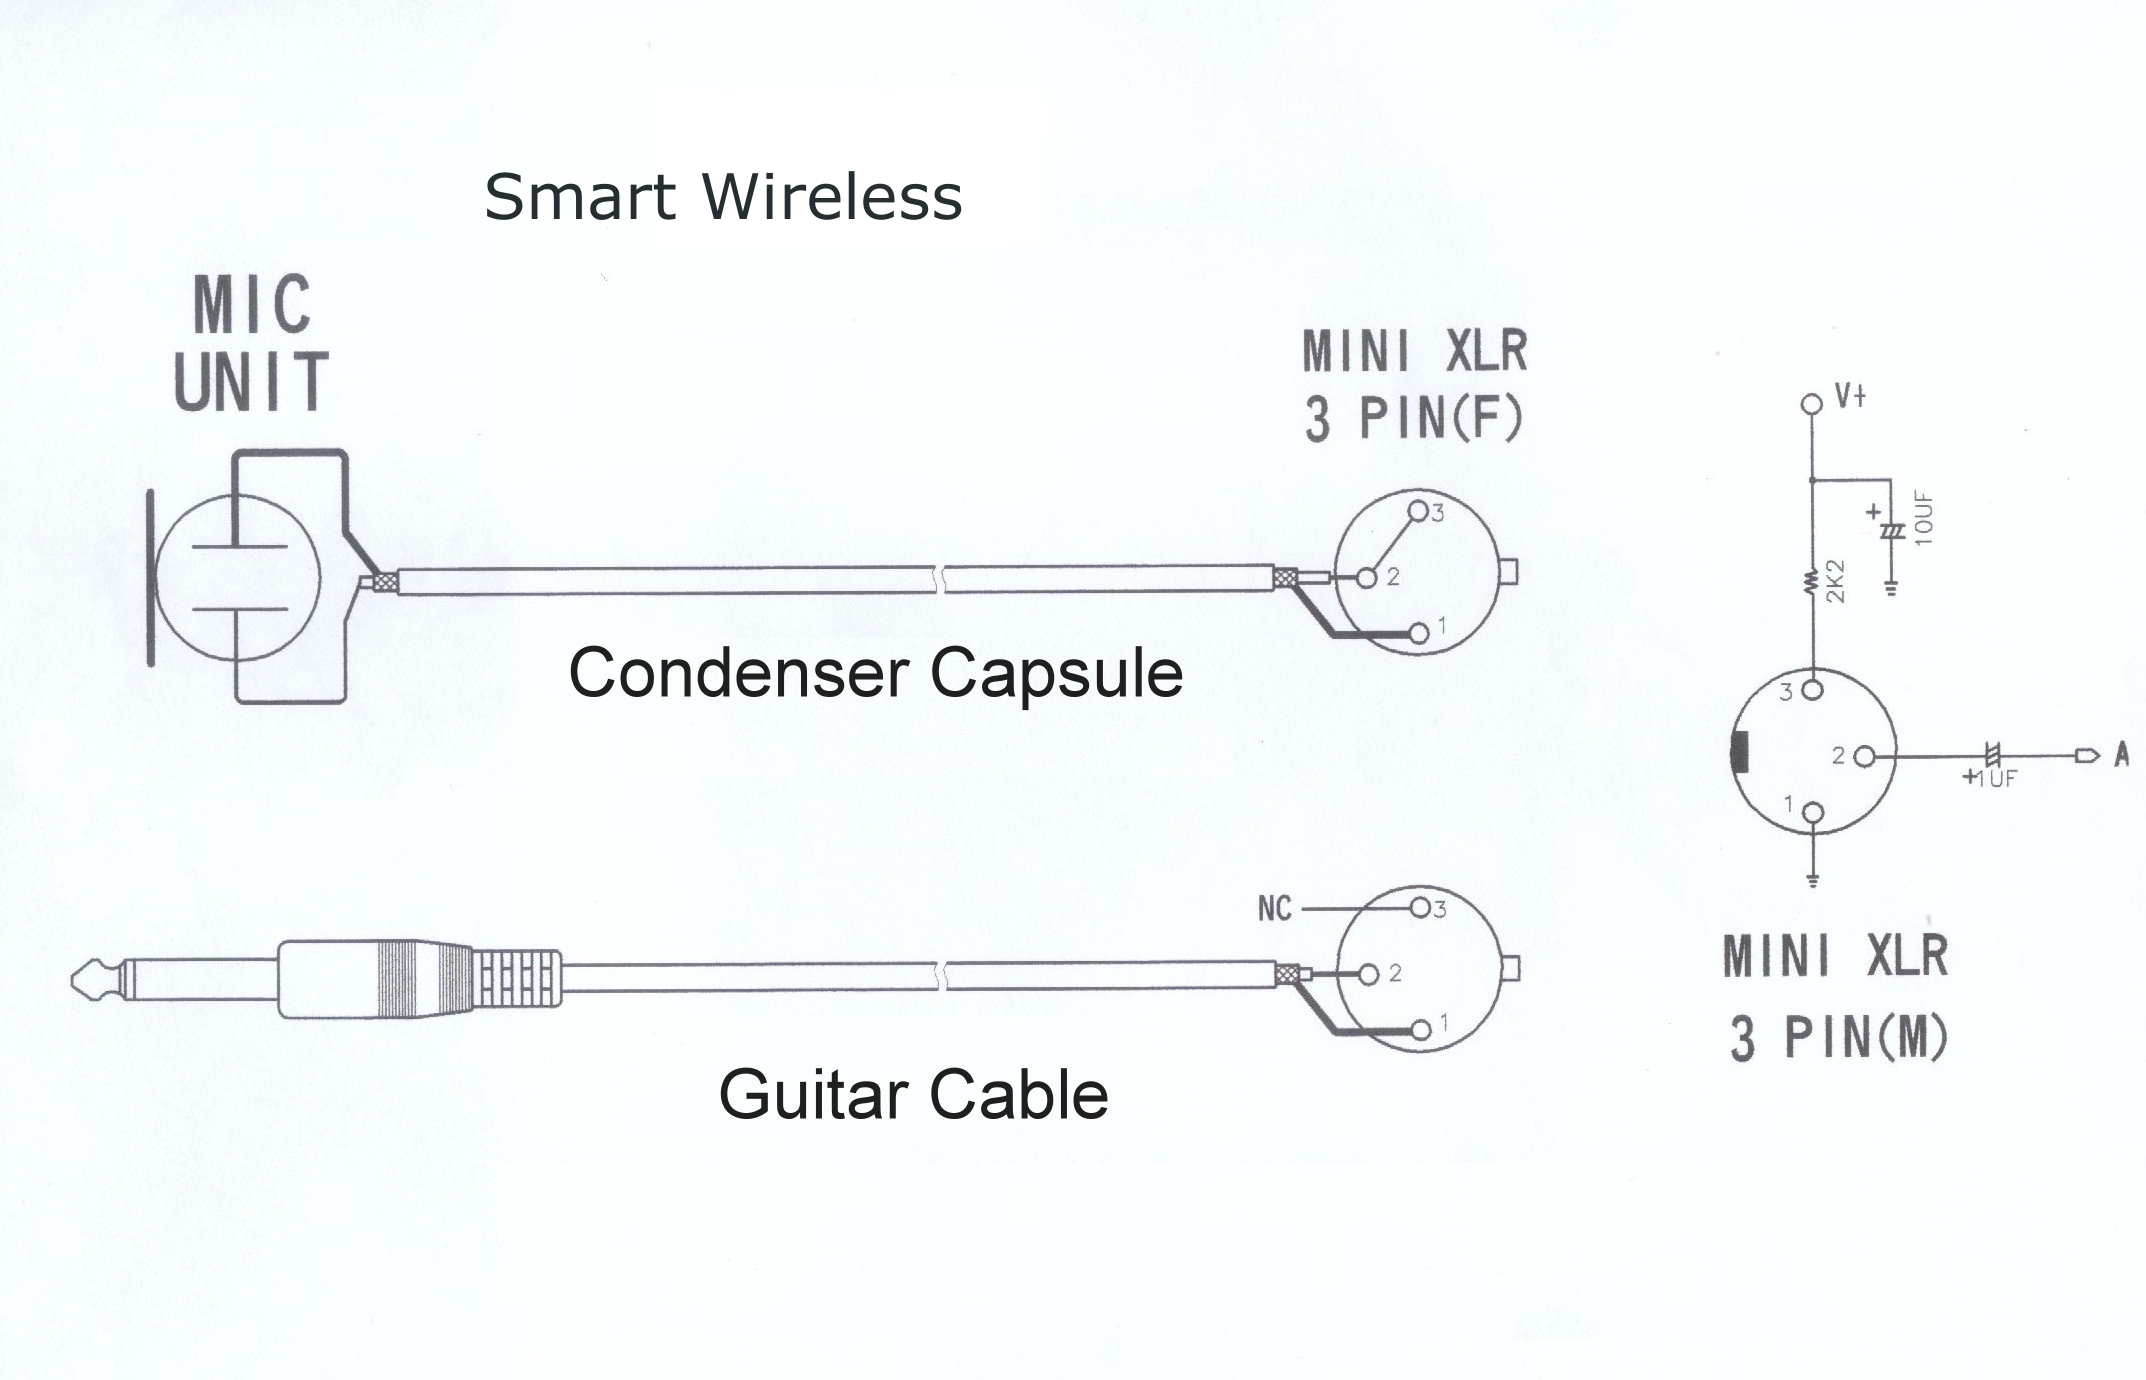 3 pin xlr wiring diagram, cable wiring, etc shure ta4f pinout shure microphone cable wiring diagram #1